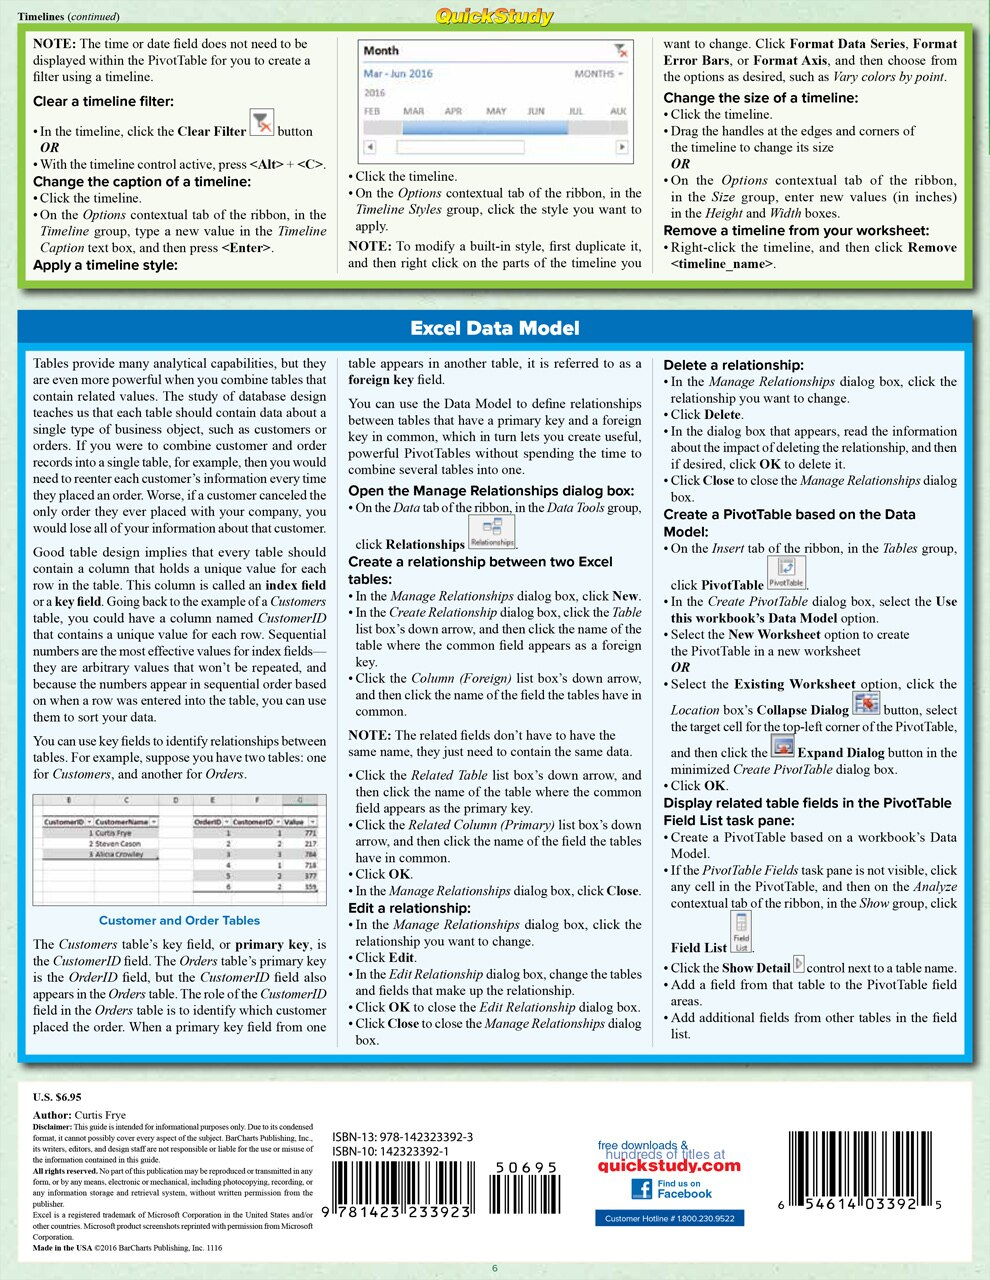 Quick Study QuickStudy Excel 2016 Advanced Laminated Reference Guide BarCharts Publishing Business Software Reference Back Image